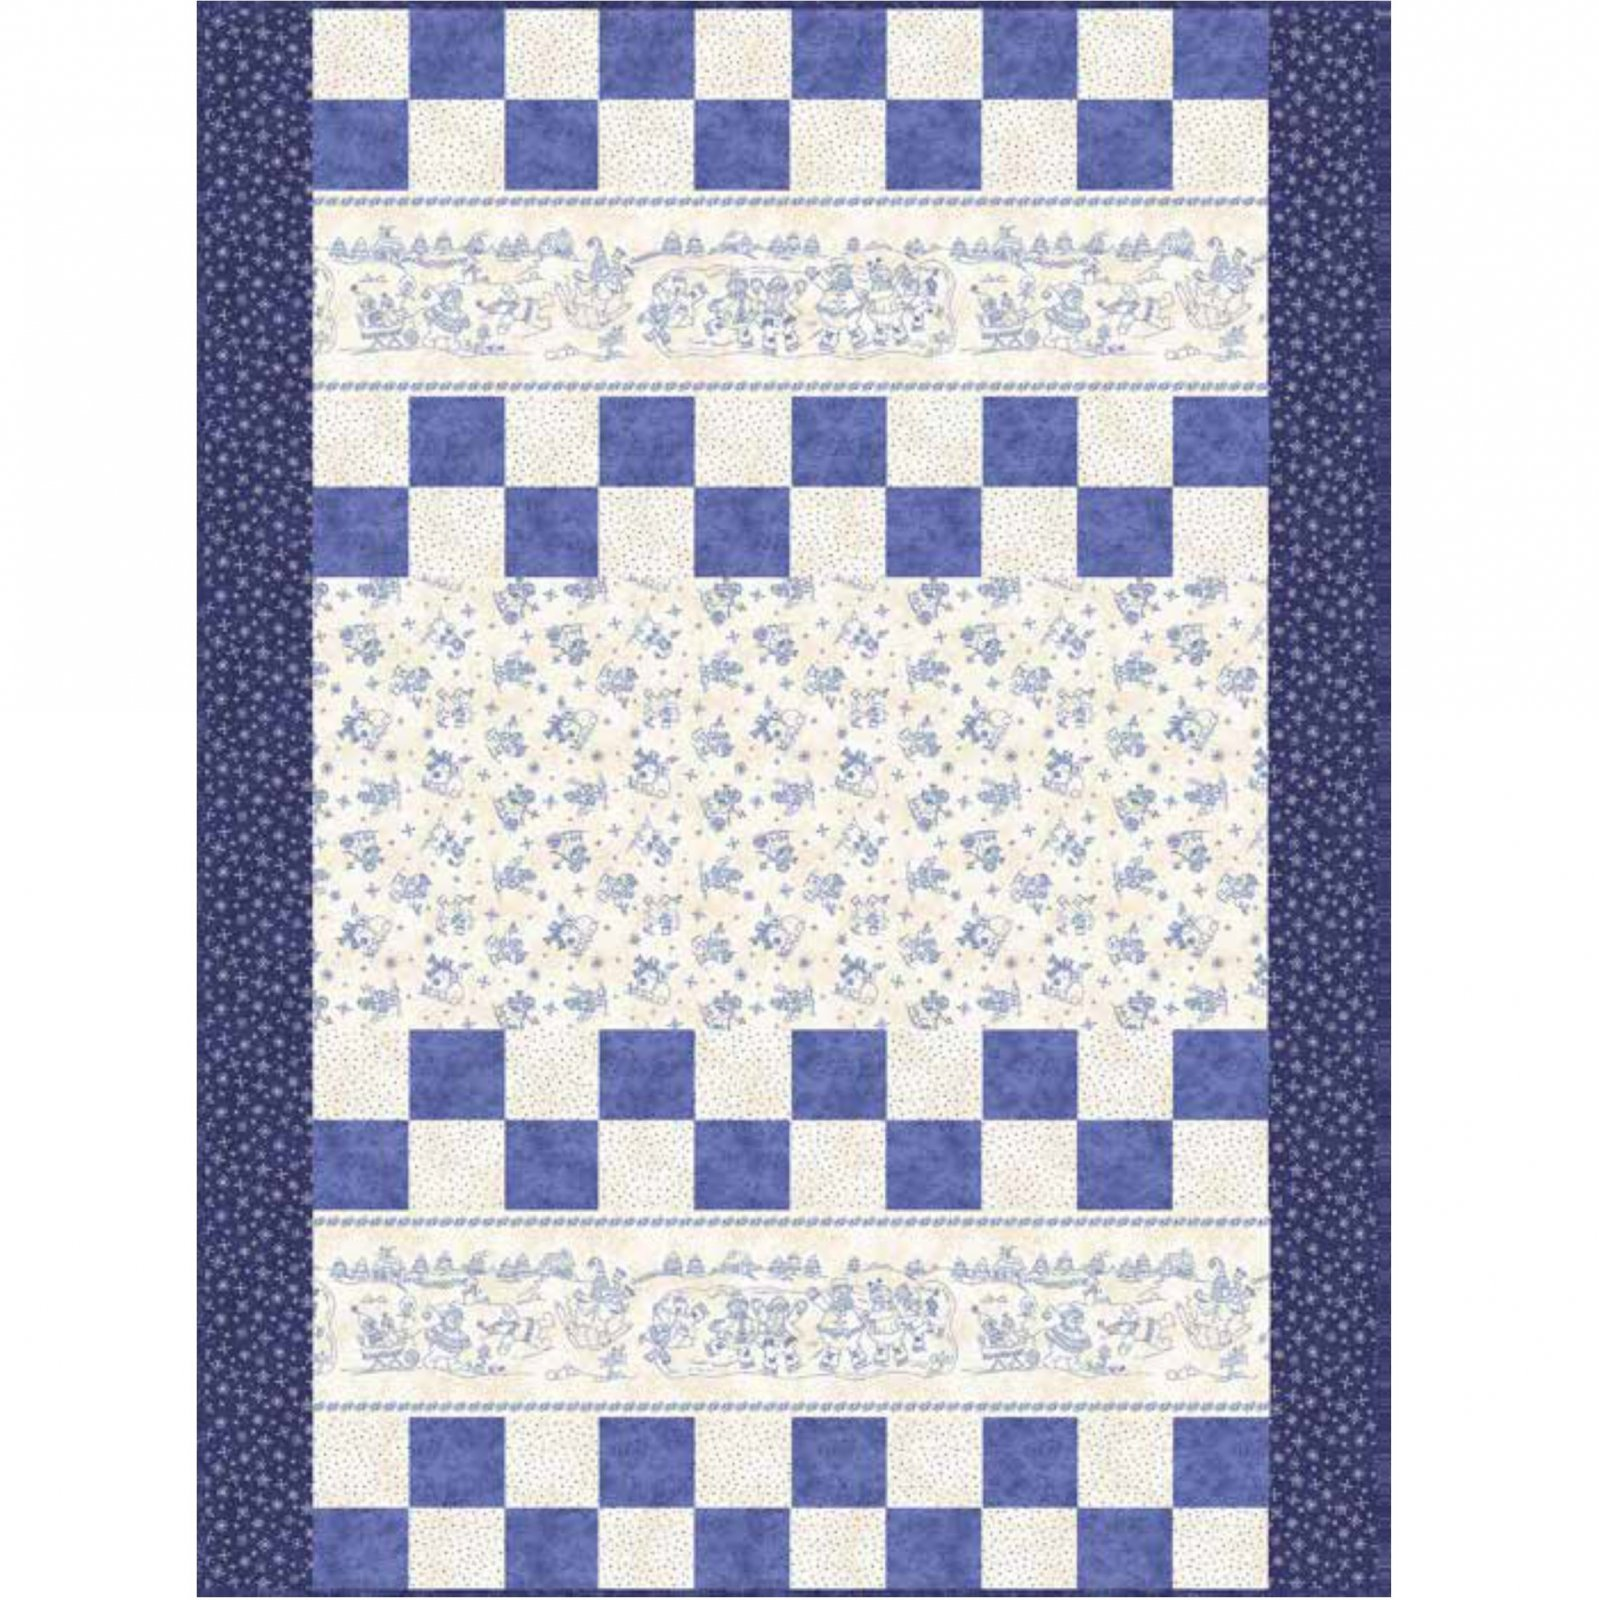 Roly-Poly Snowmen Quilt Kit by Quilting Foxes - On Sale